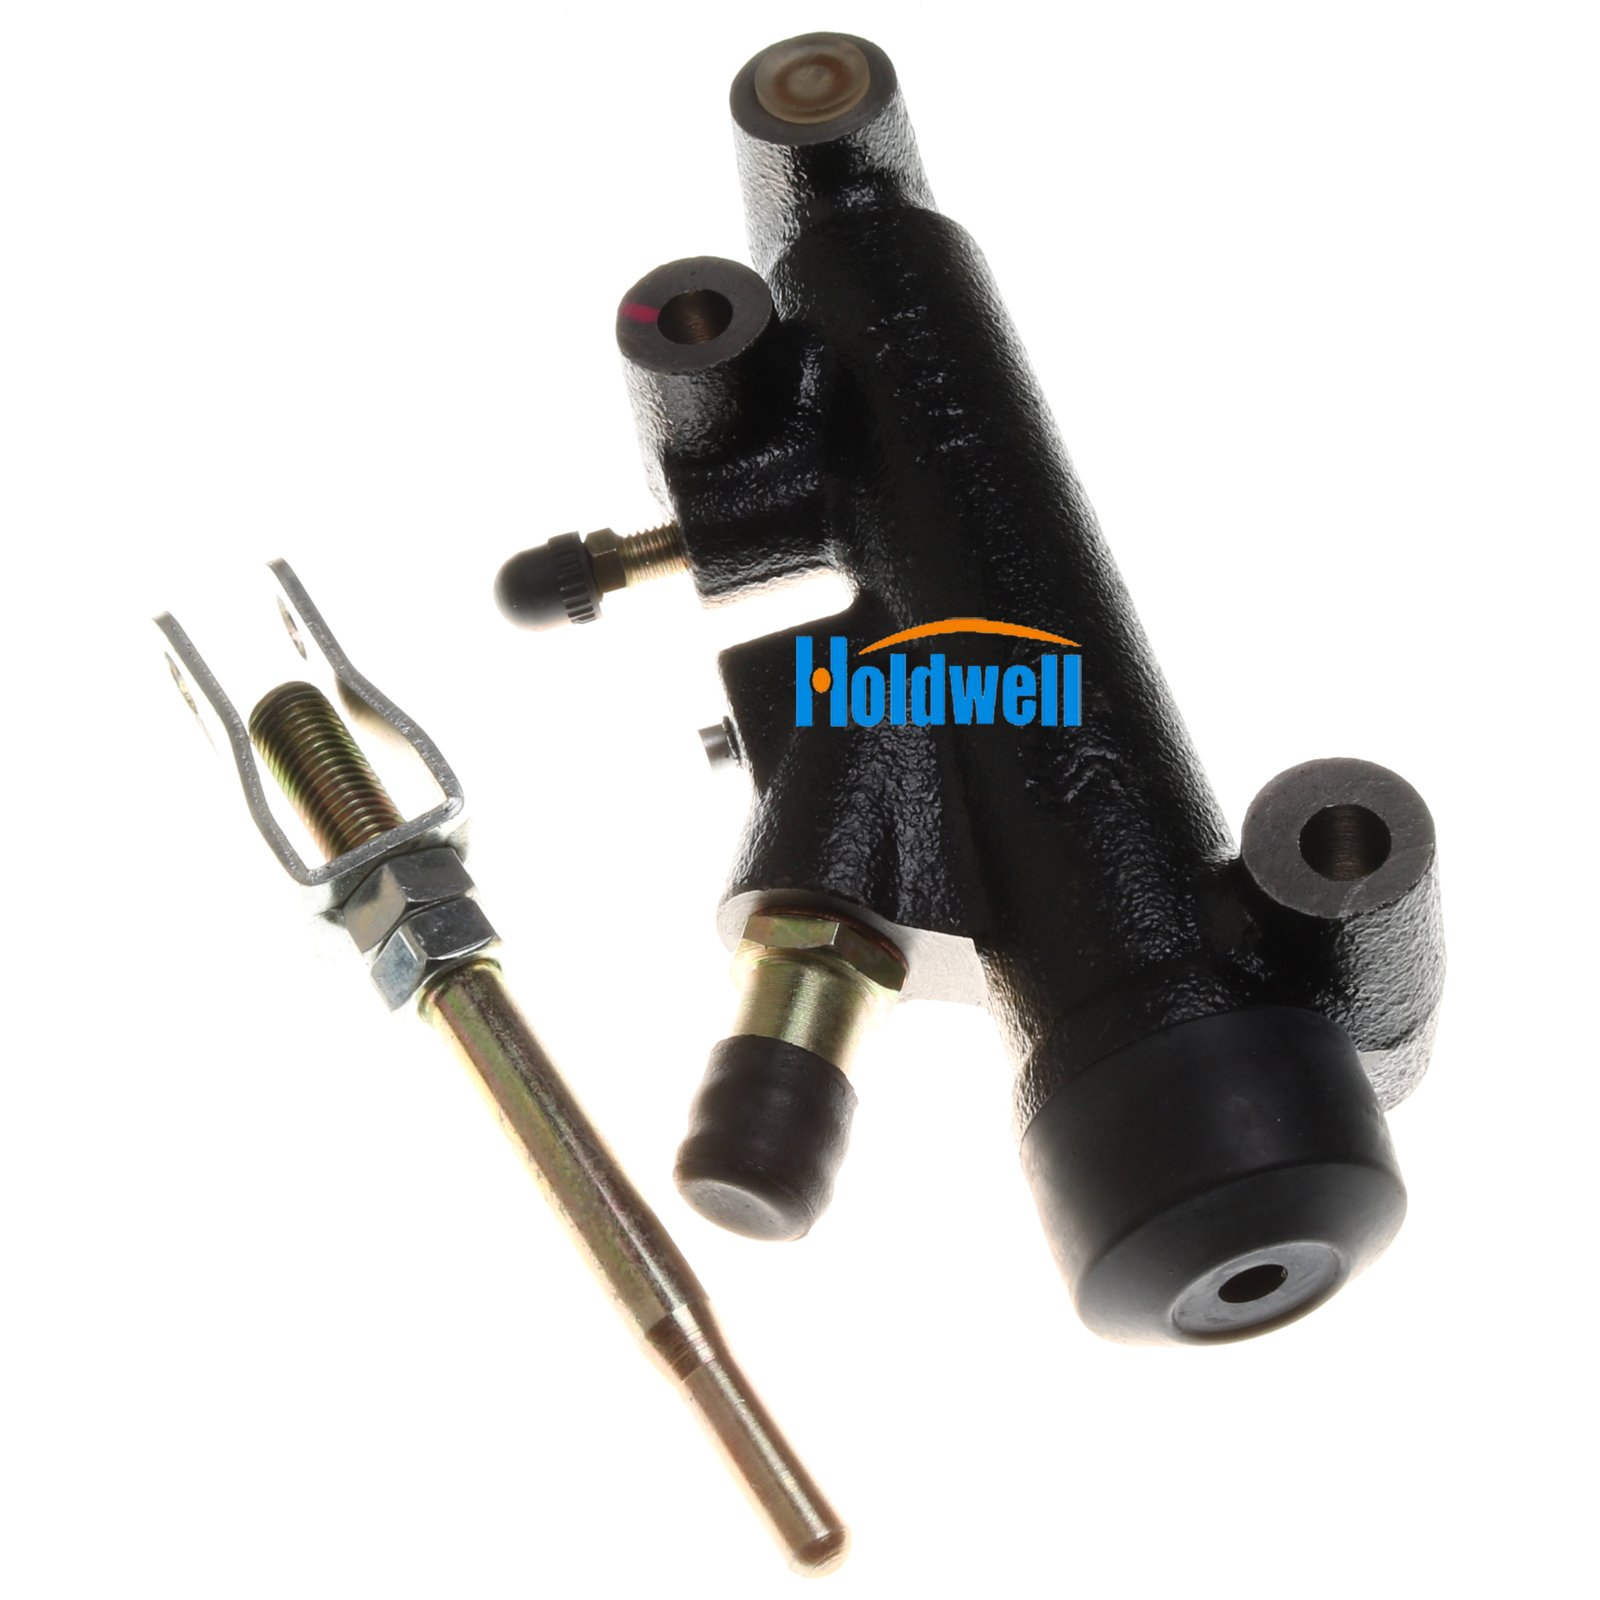 Holdwell Brake Cylinder 46010-L1410 for Nissan Forklift Master by Holdwell